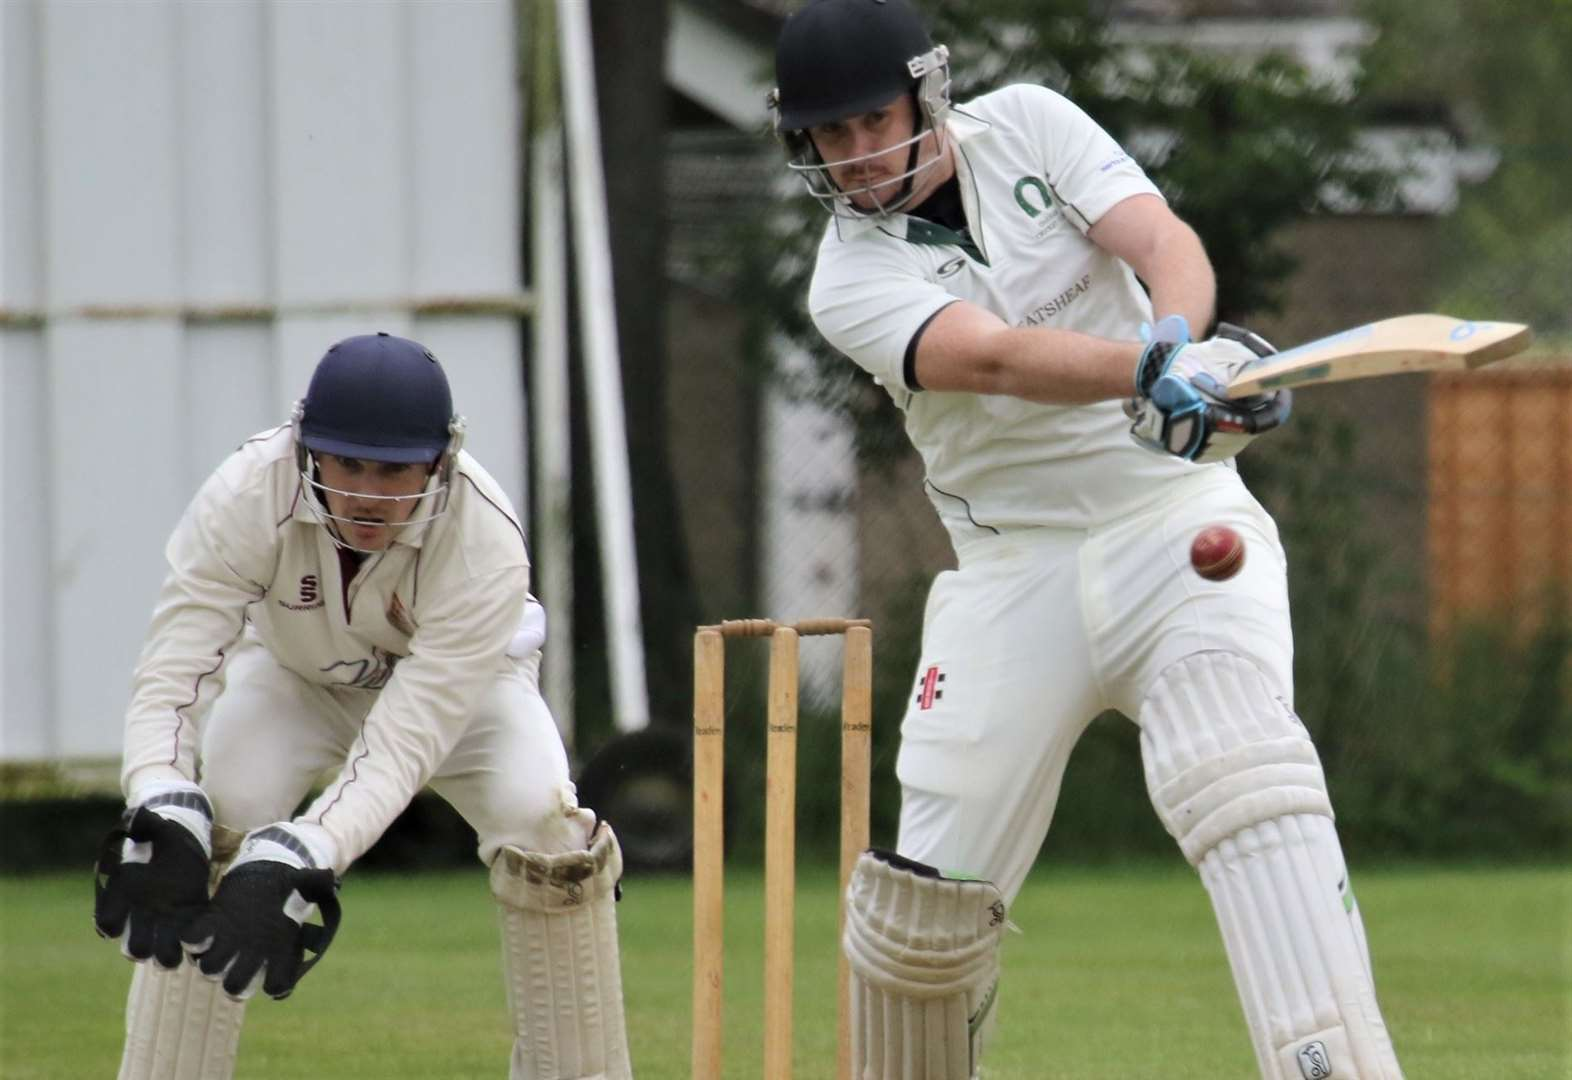 Oakham's winning start is ended in first loss of the season